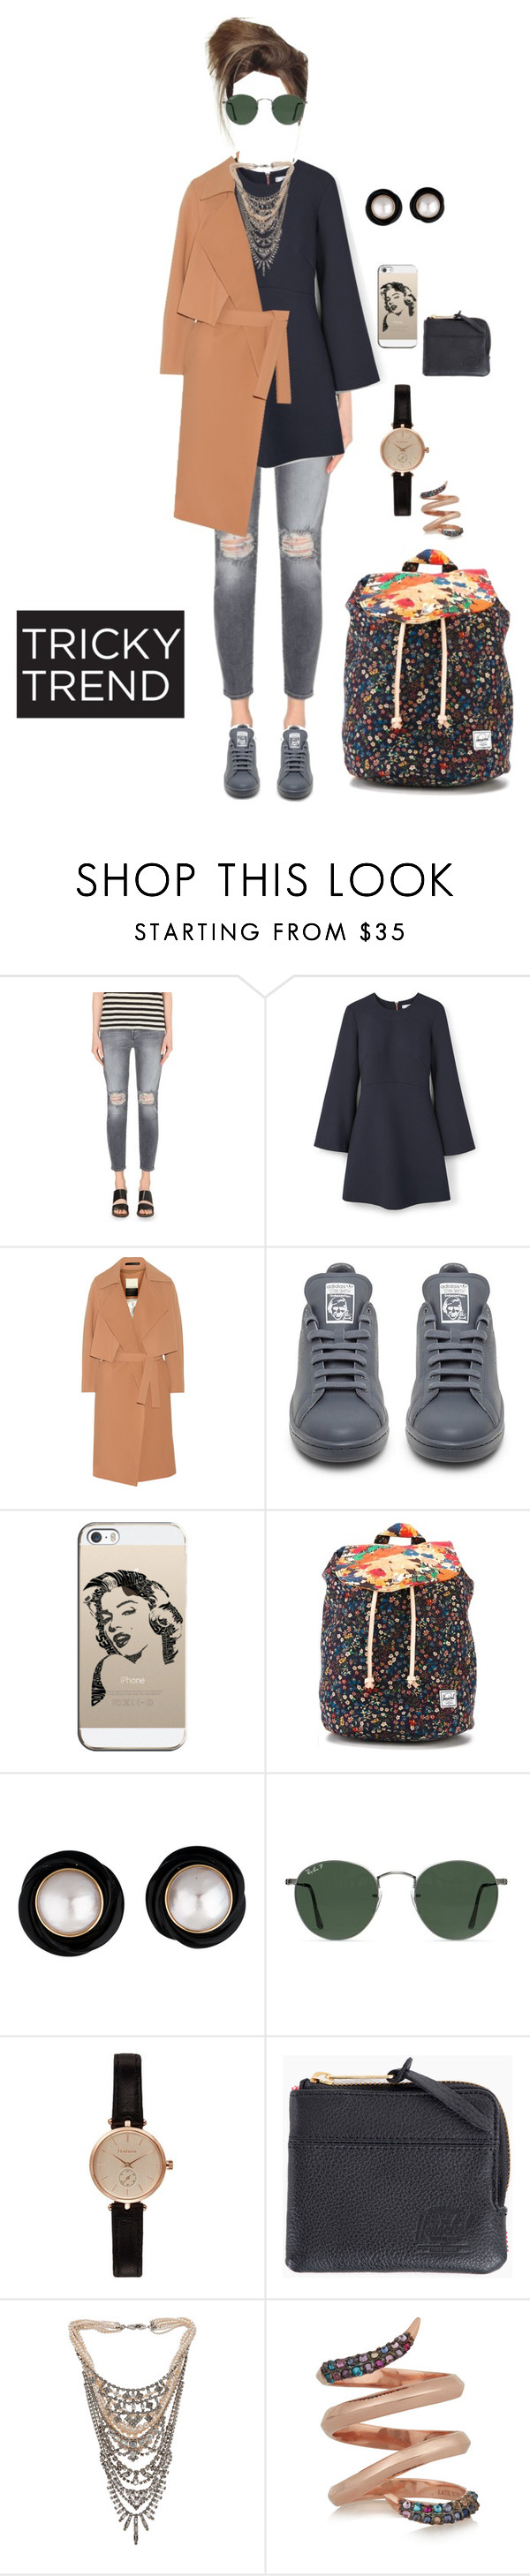 """Anti social"" by yvsra on Polyvore featuring 7 For All Mankind, MANGO, By Malene Birger, adidas, Casetify, Herschel Supply Co., Ray-Ban, Barbour, Tom Binns and Katie Rowland"